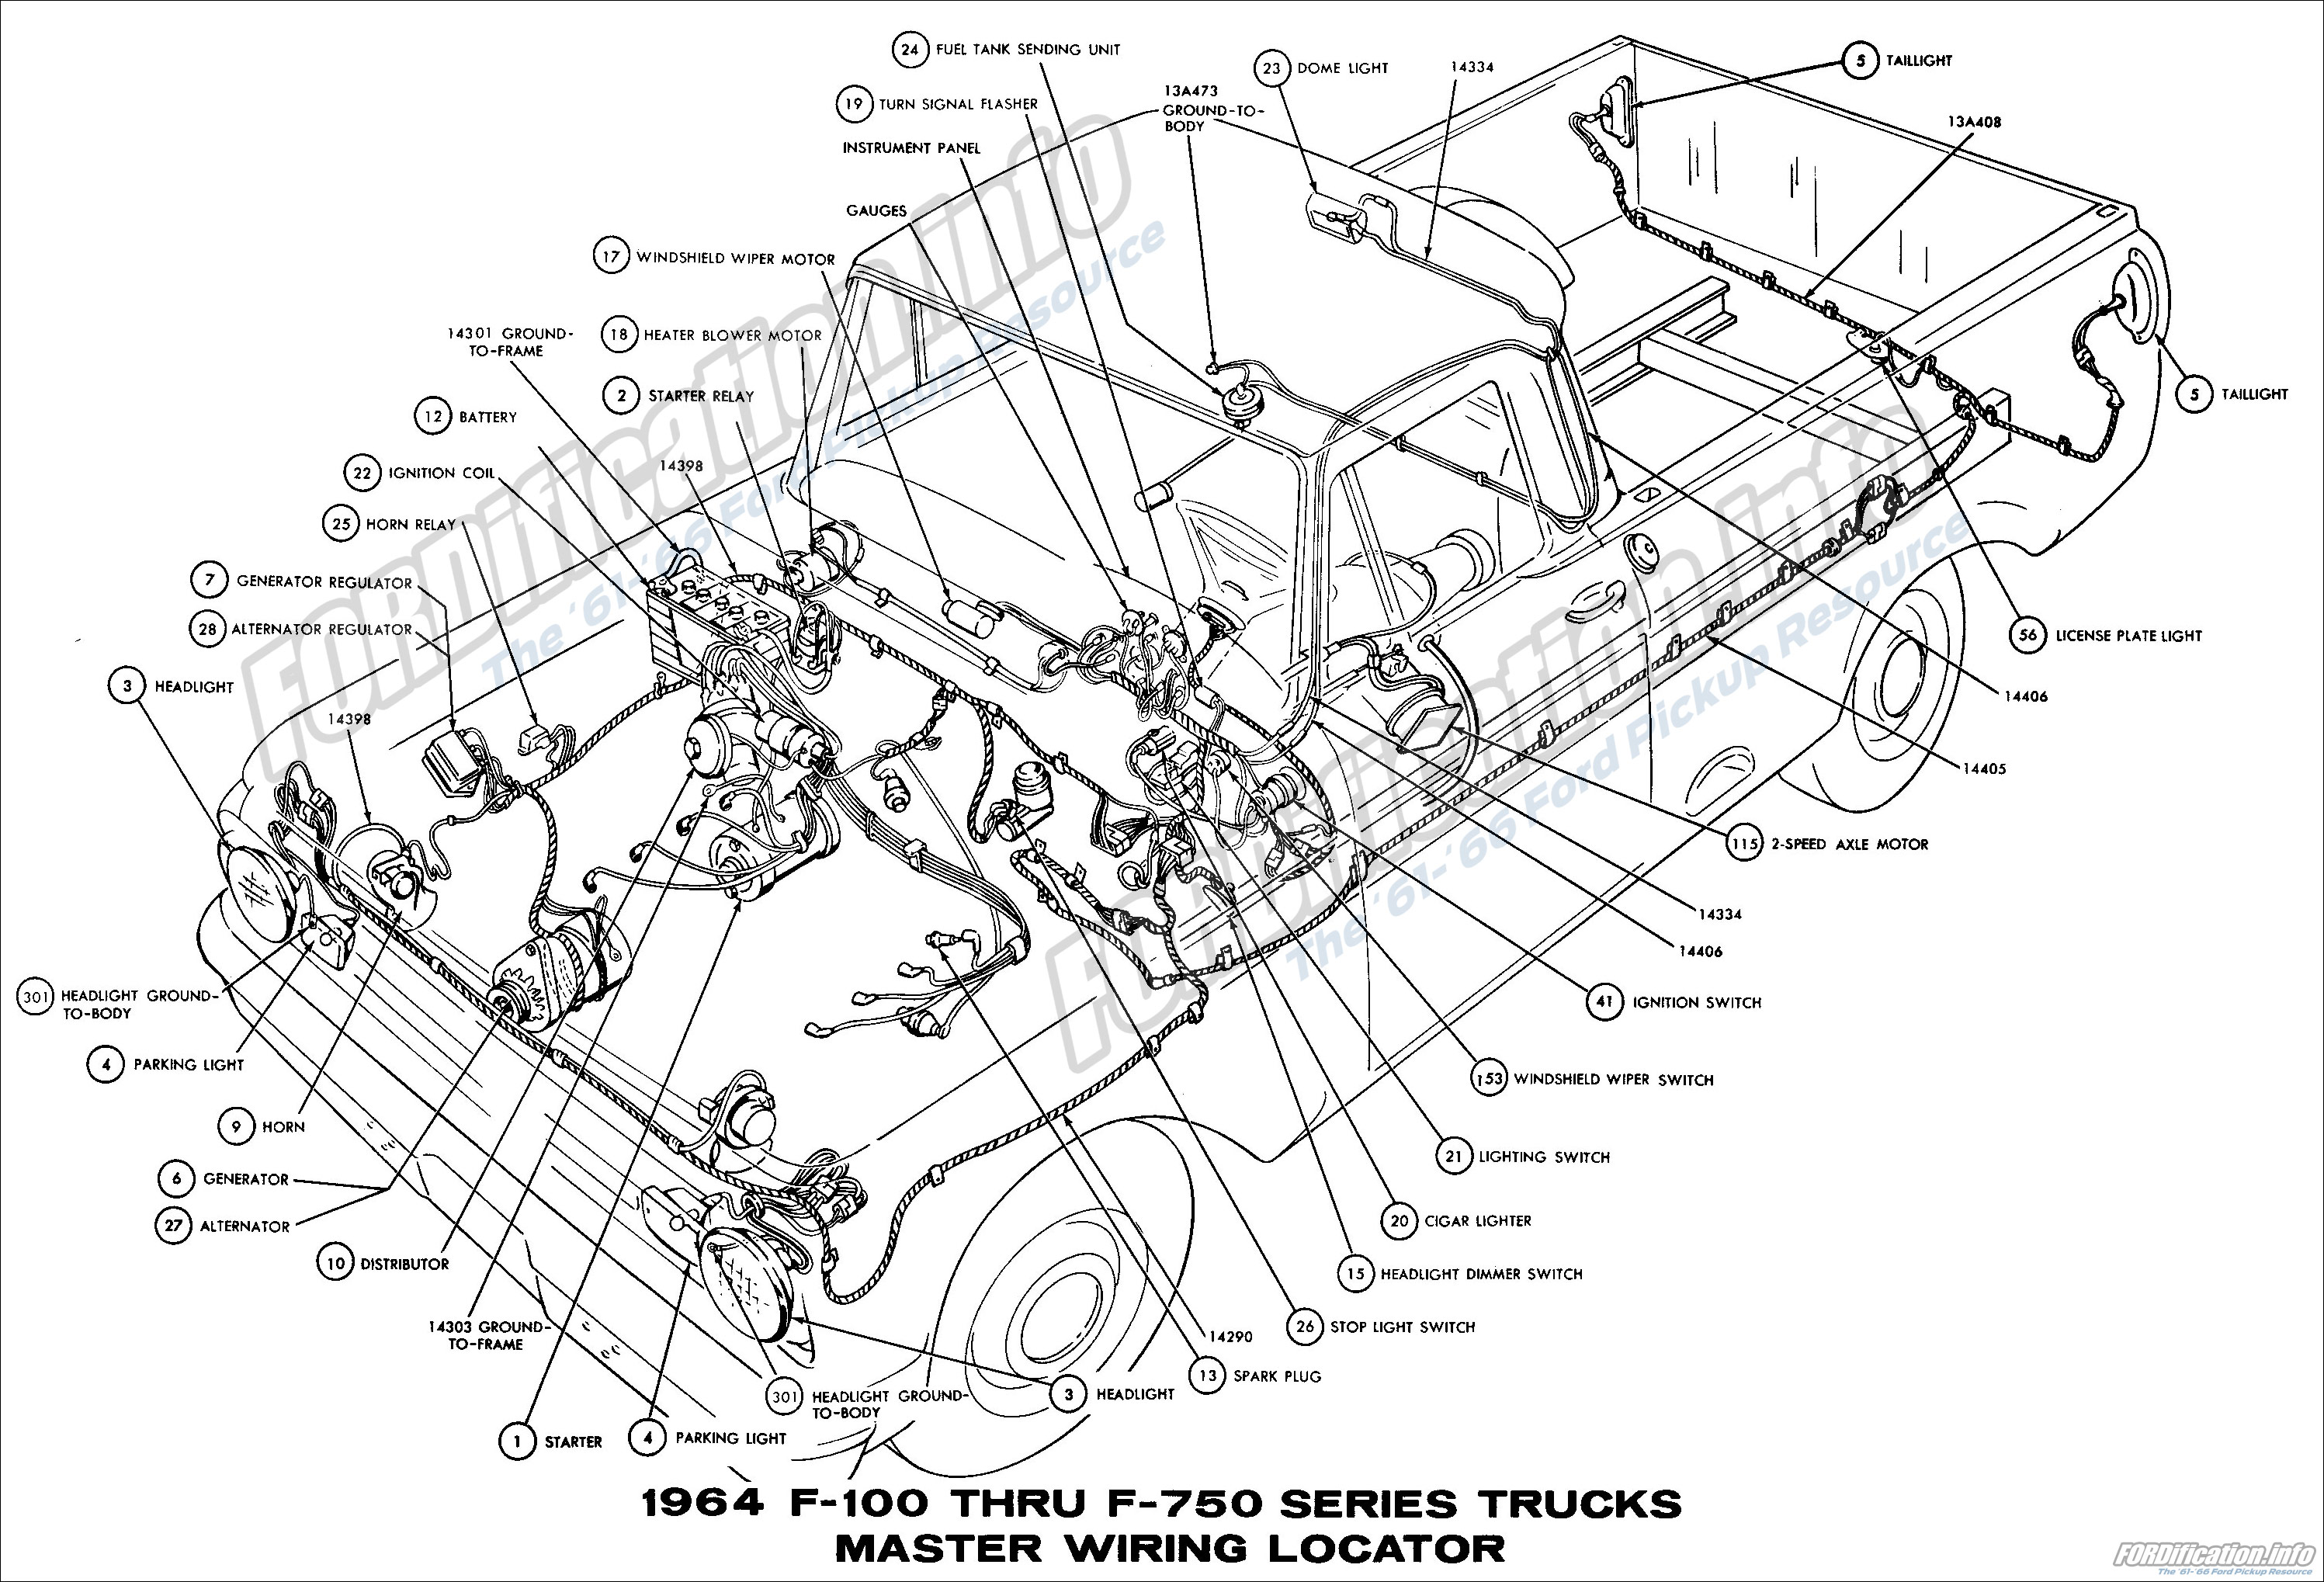 78 Ford Ignition Switch Wiring Diagram Worksheet And On Duraspark 1966 Truck Schematics Rh Parntesis Co